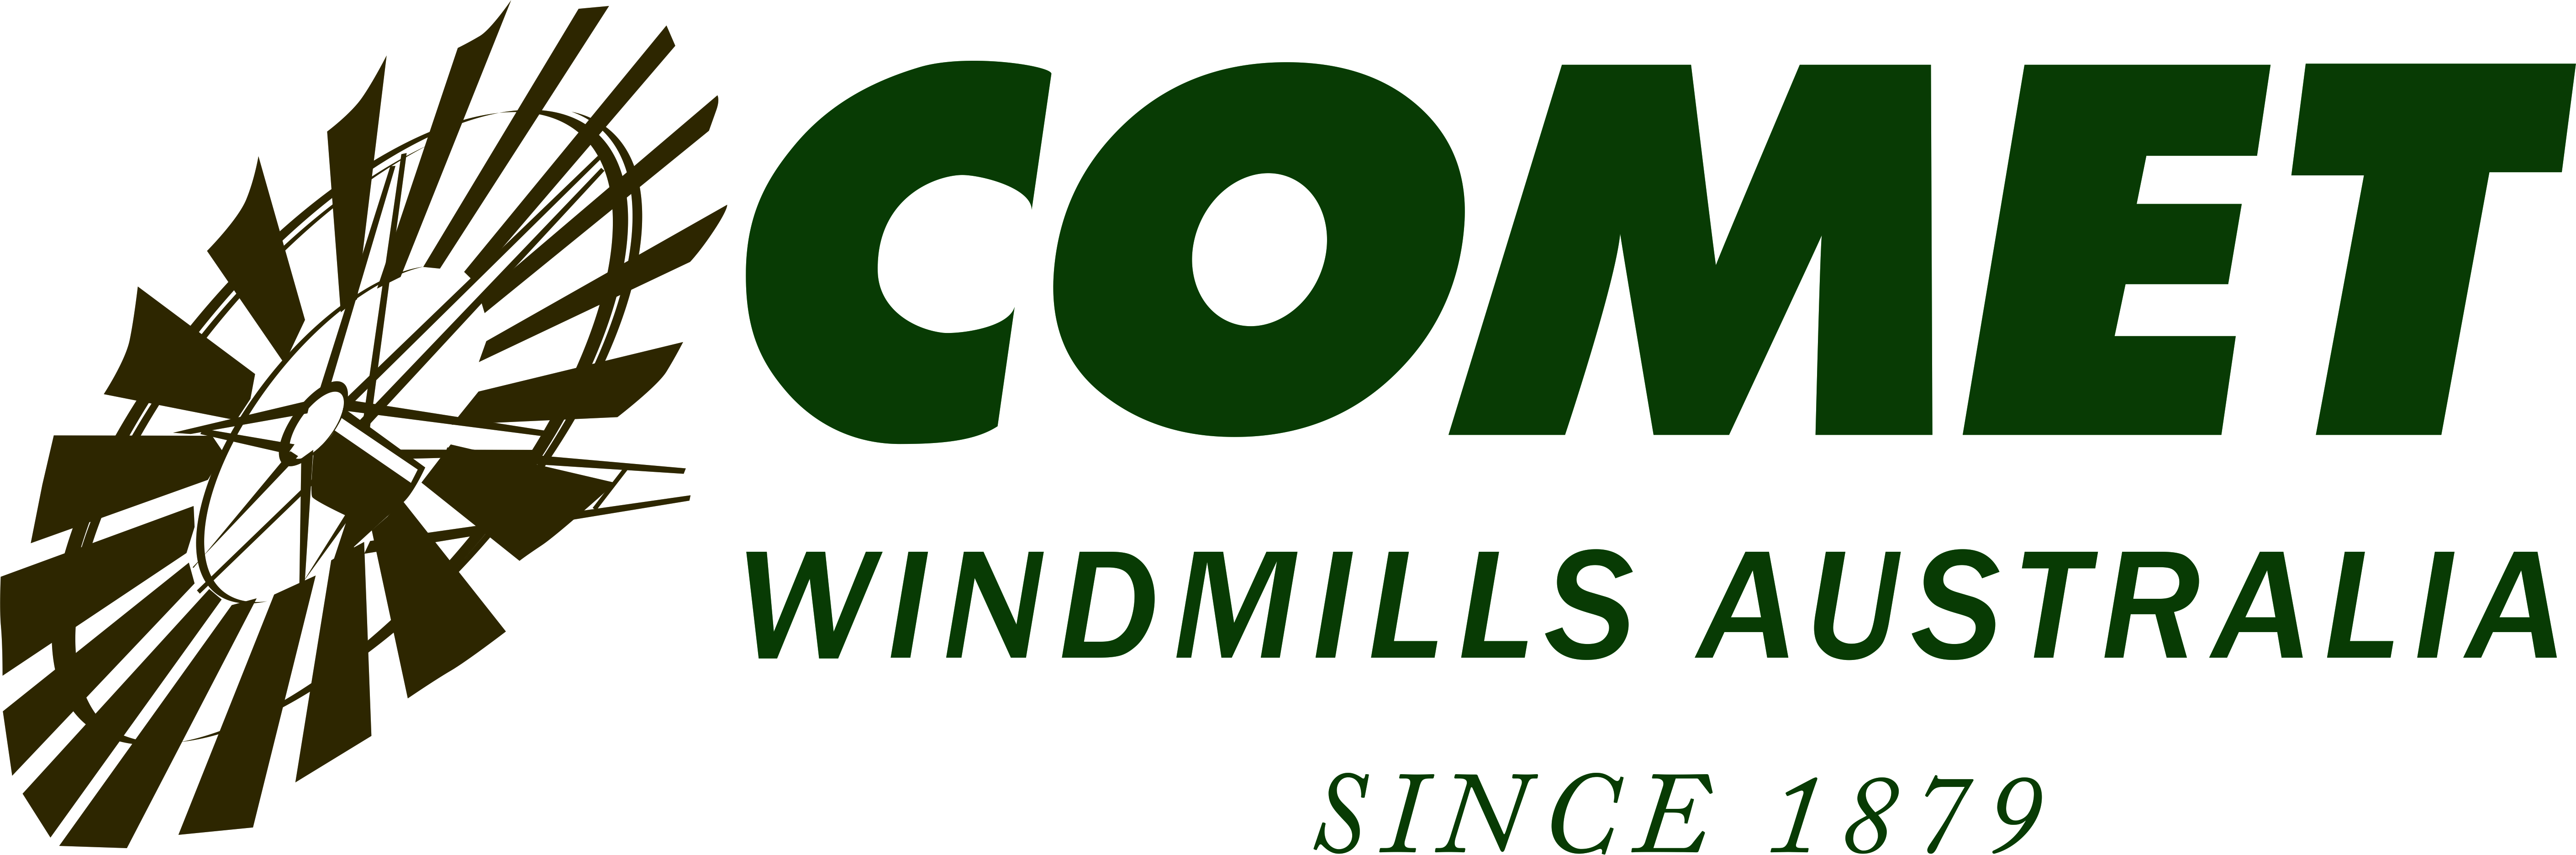 Comet Windmill Products Amp Services Comet Windmills